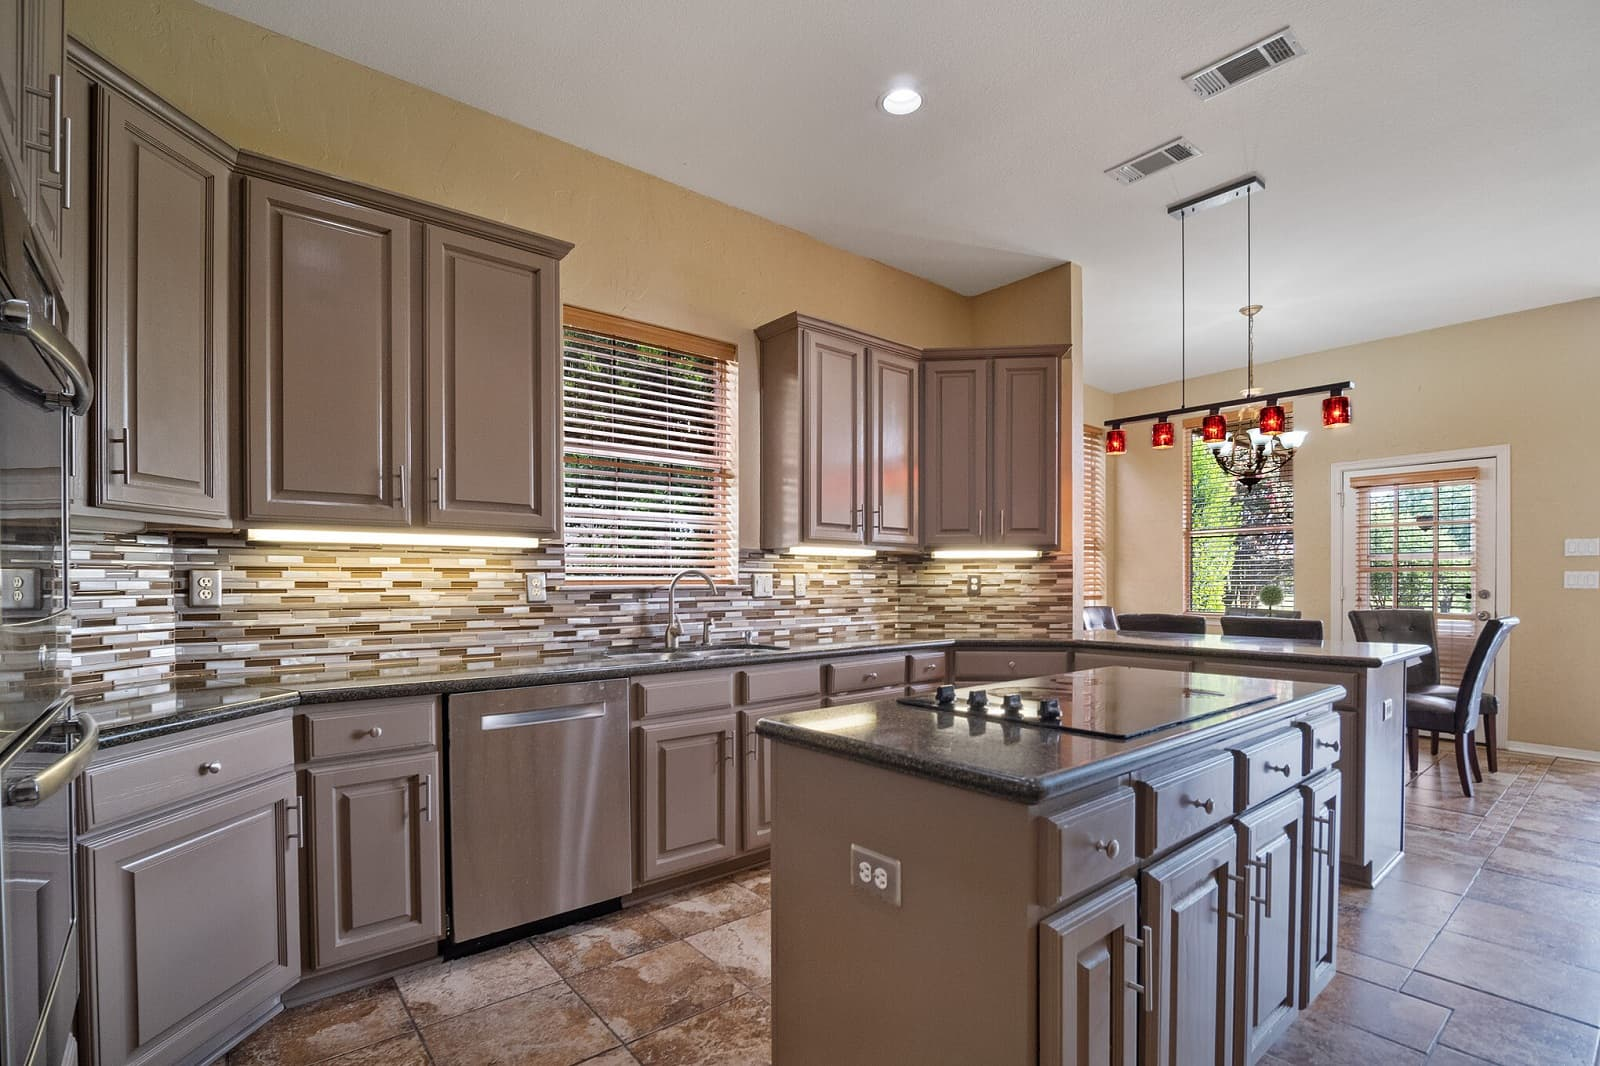 Real Estate Photography in Plano - TX - Kitchen View